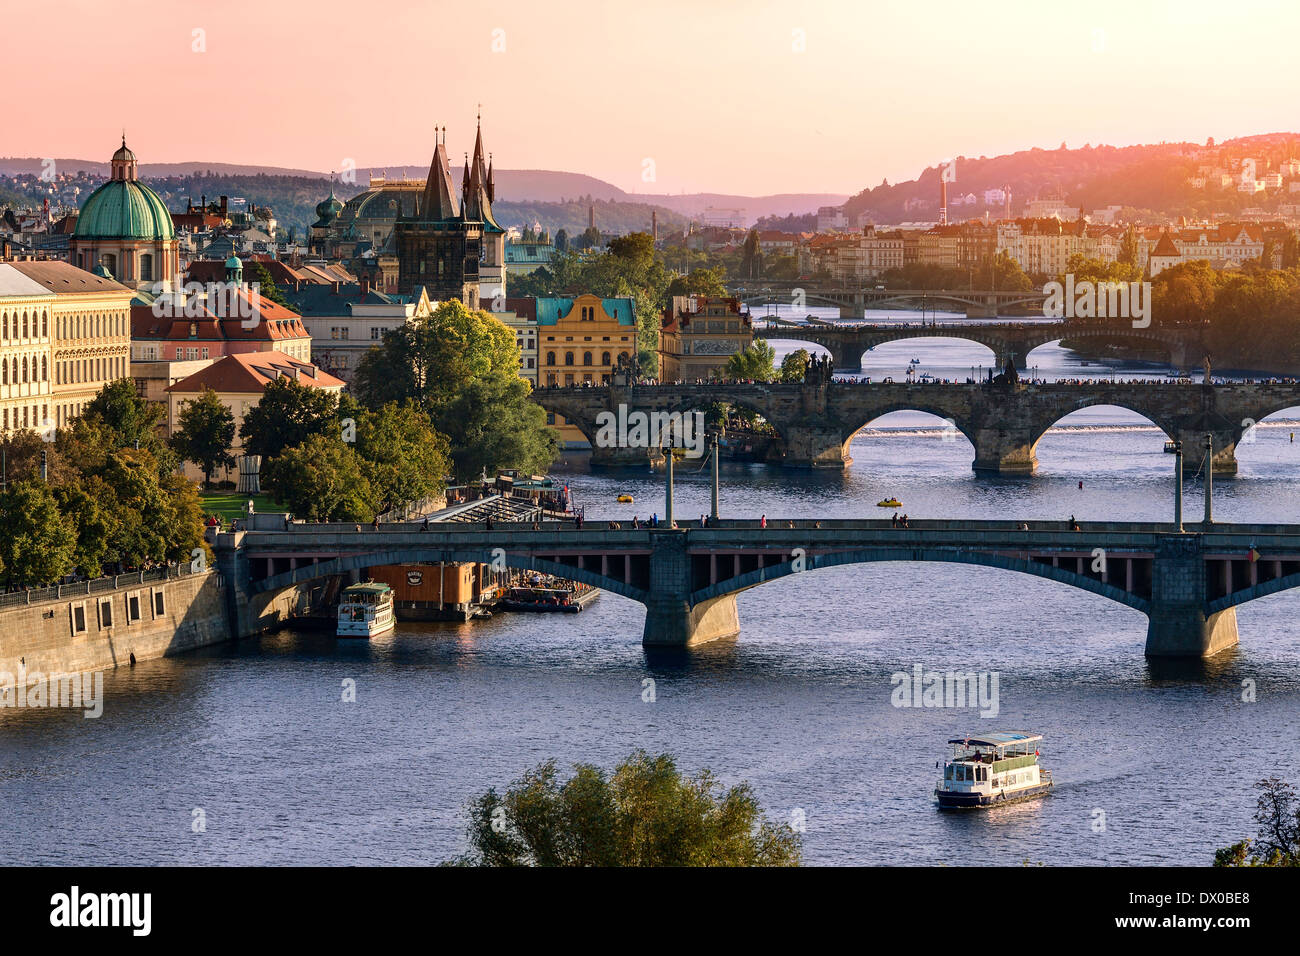 Over of Vitava river and Charles bridge and bridges of Prague. - Stock Image